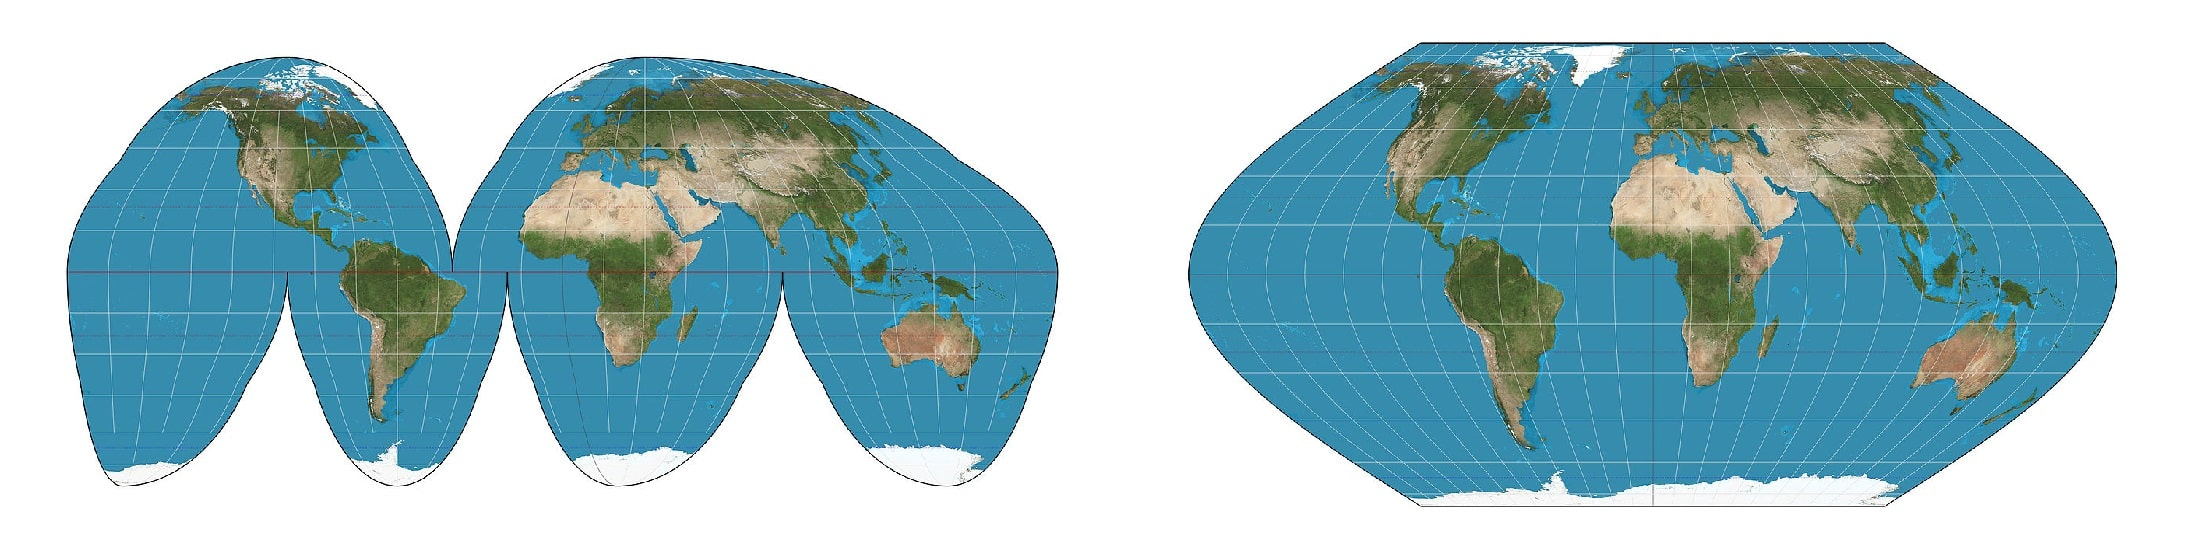 Projection Pseudo-cylindrique